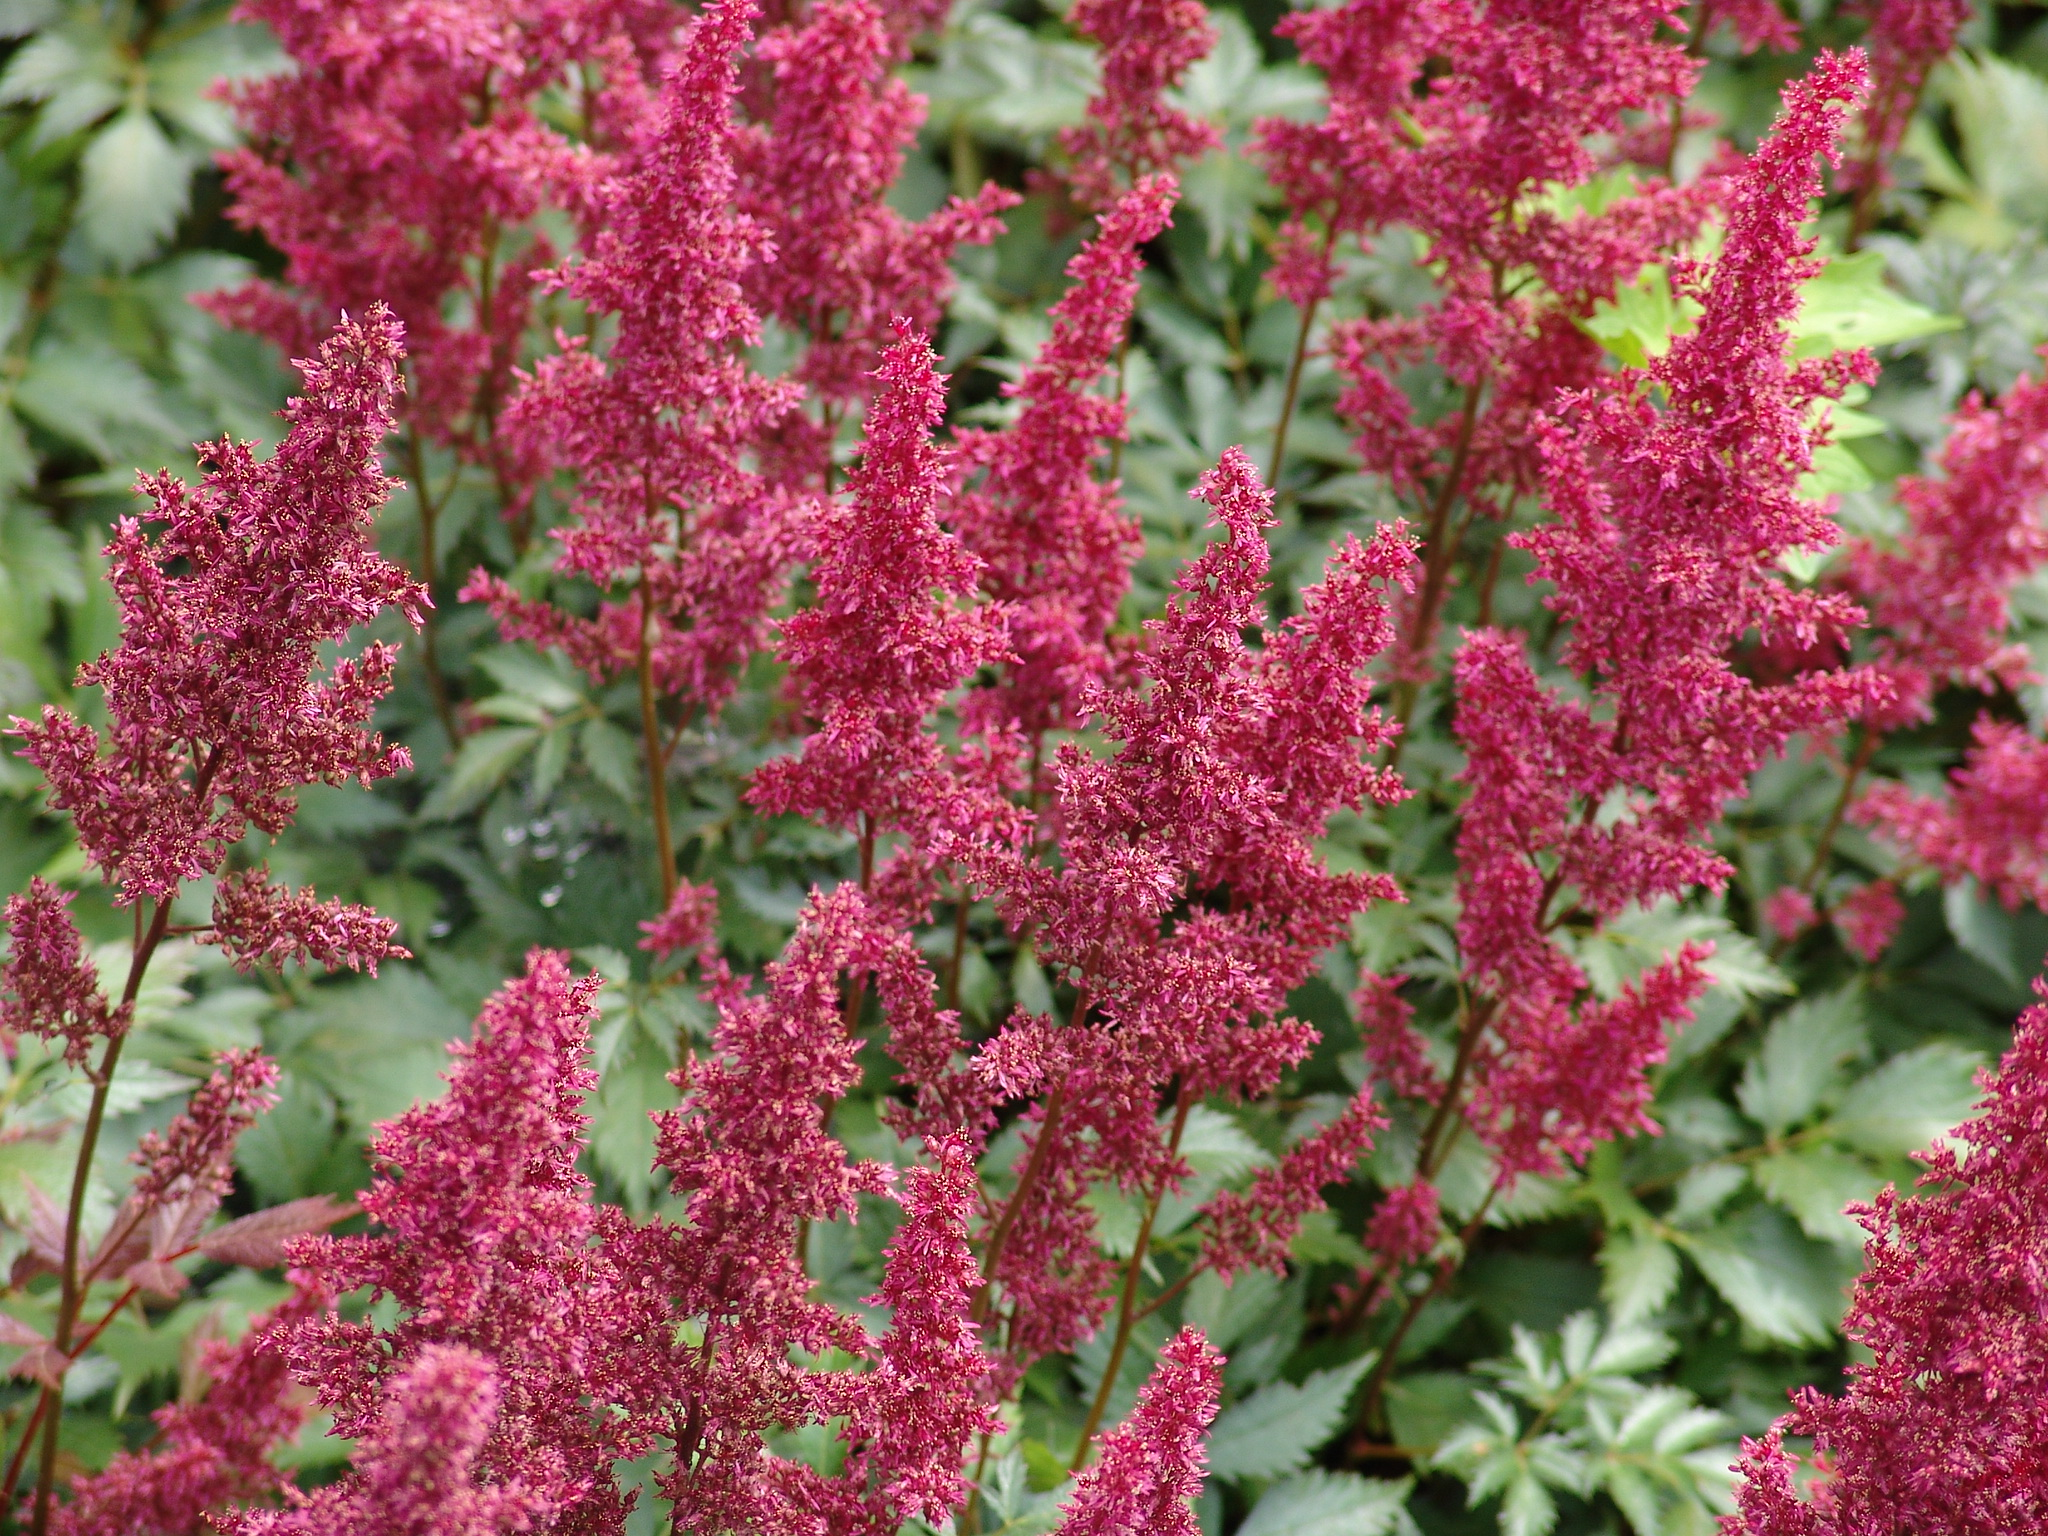 Fanal [Род астильба – Astilbe Buch.-Ham.]